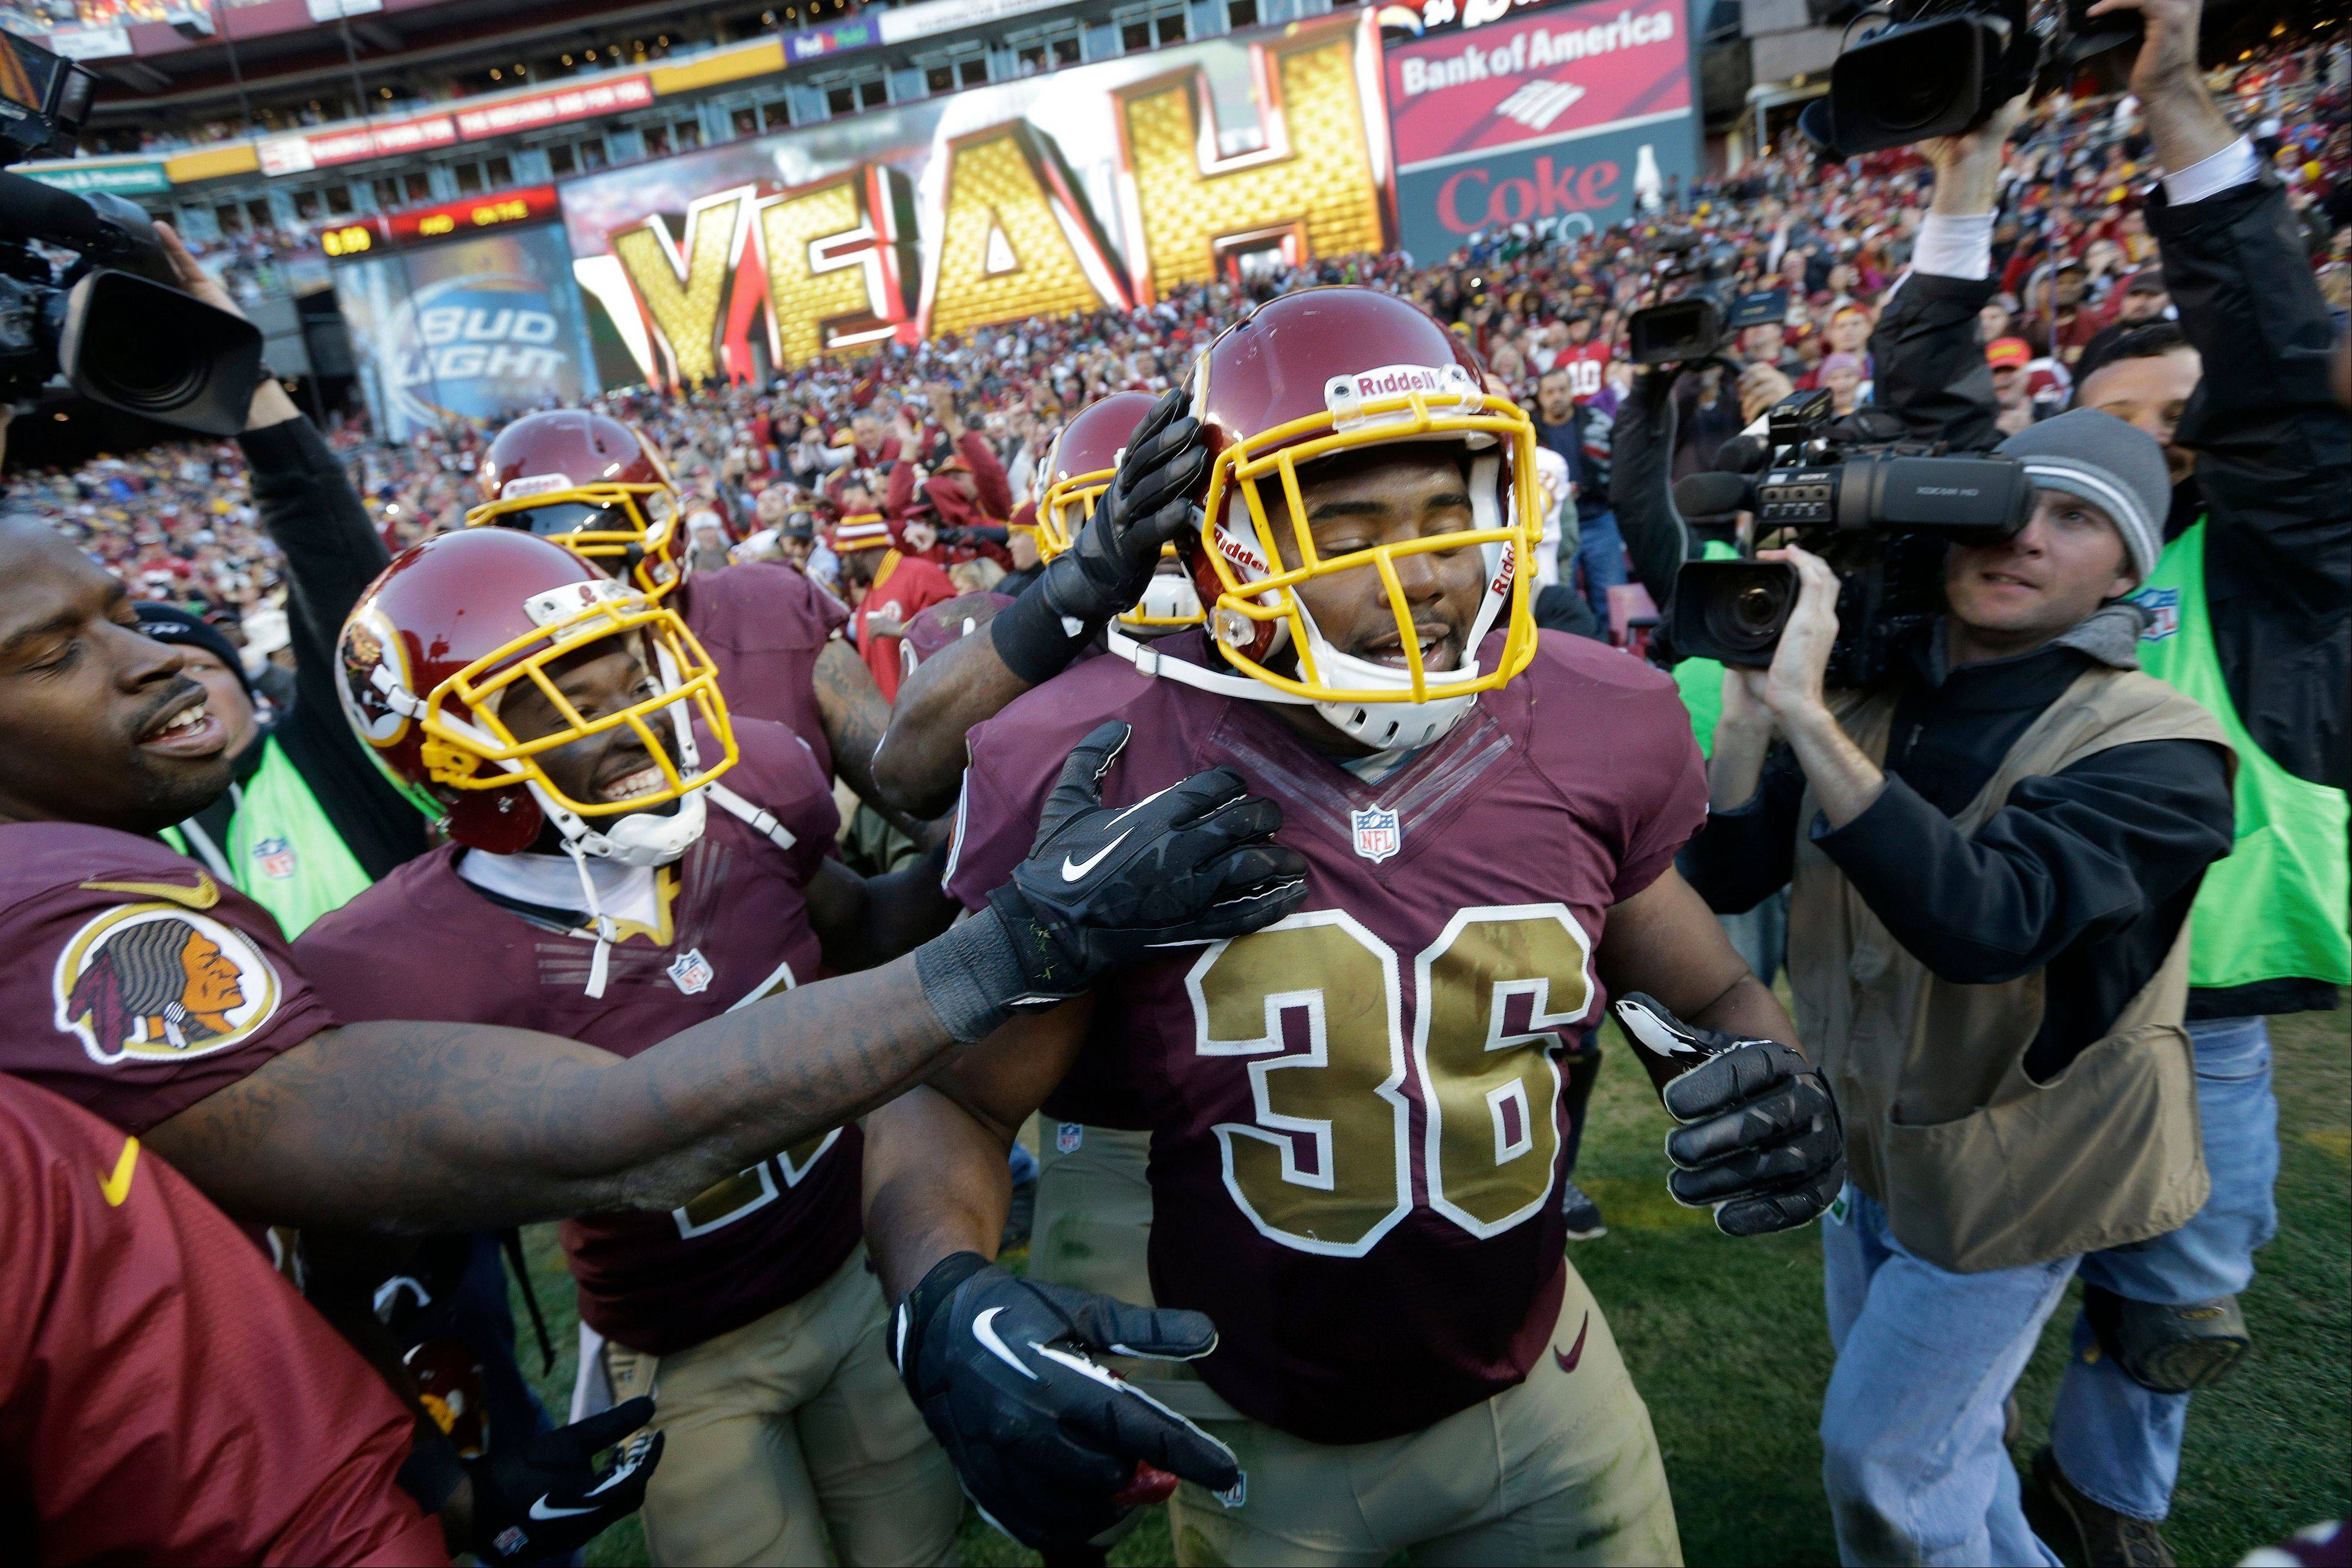 Washington fullback Darrel Young is congratulated by his teammates after scoring the winning touchdown in overtime against the San Diego Chargers in Landover, Md., Sunday, Nov. 3, 2013. Washington defeated San Diego 30-24.